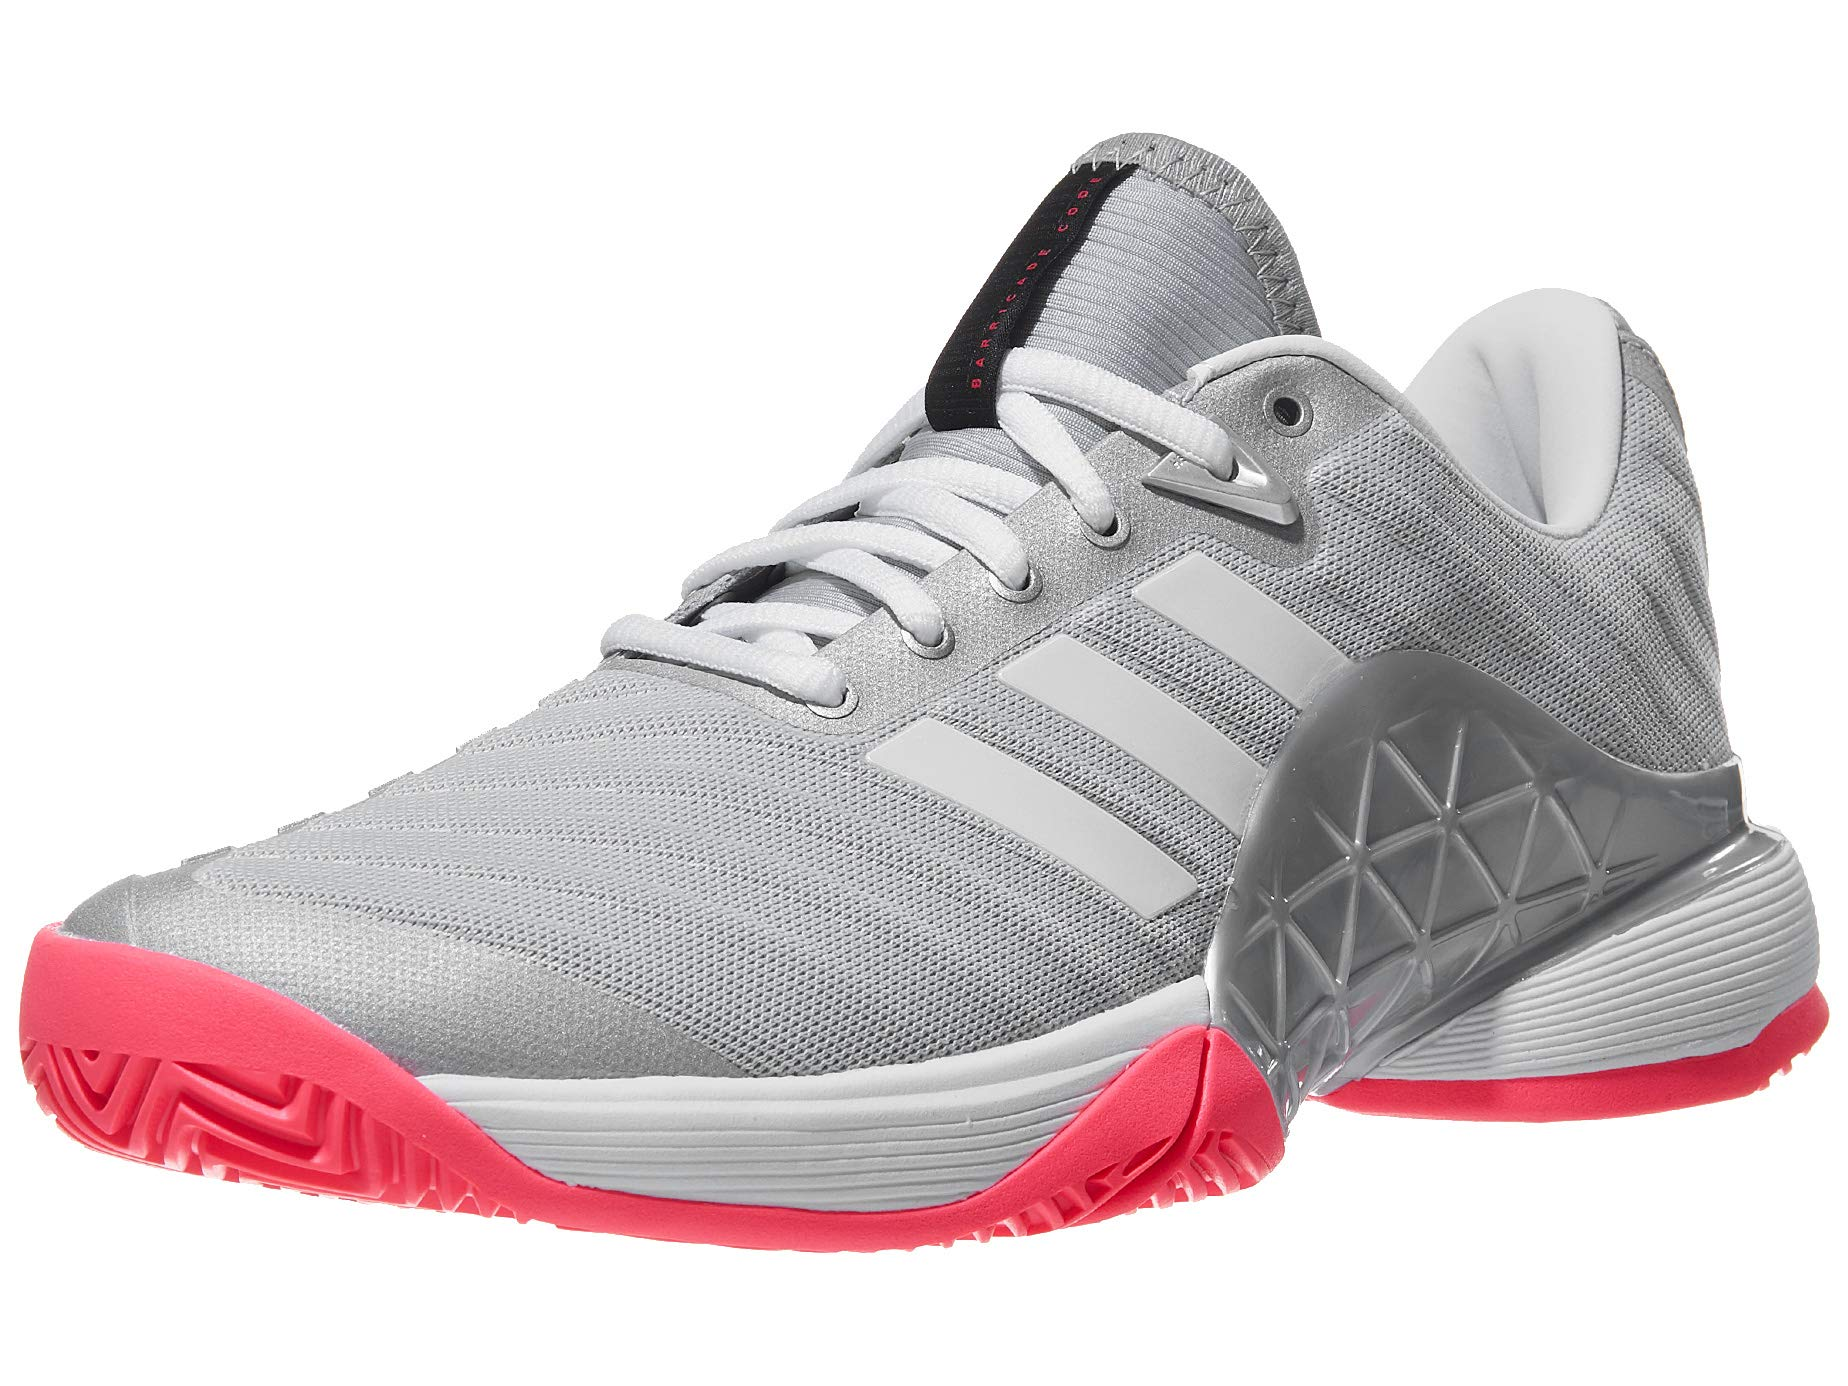 online store 7eee1 35e51 Galleon - Adidas Women s Barricade 2018 Tennis Shoe, Matte Silver White Flash  Red, 5.5 M US